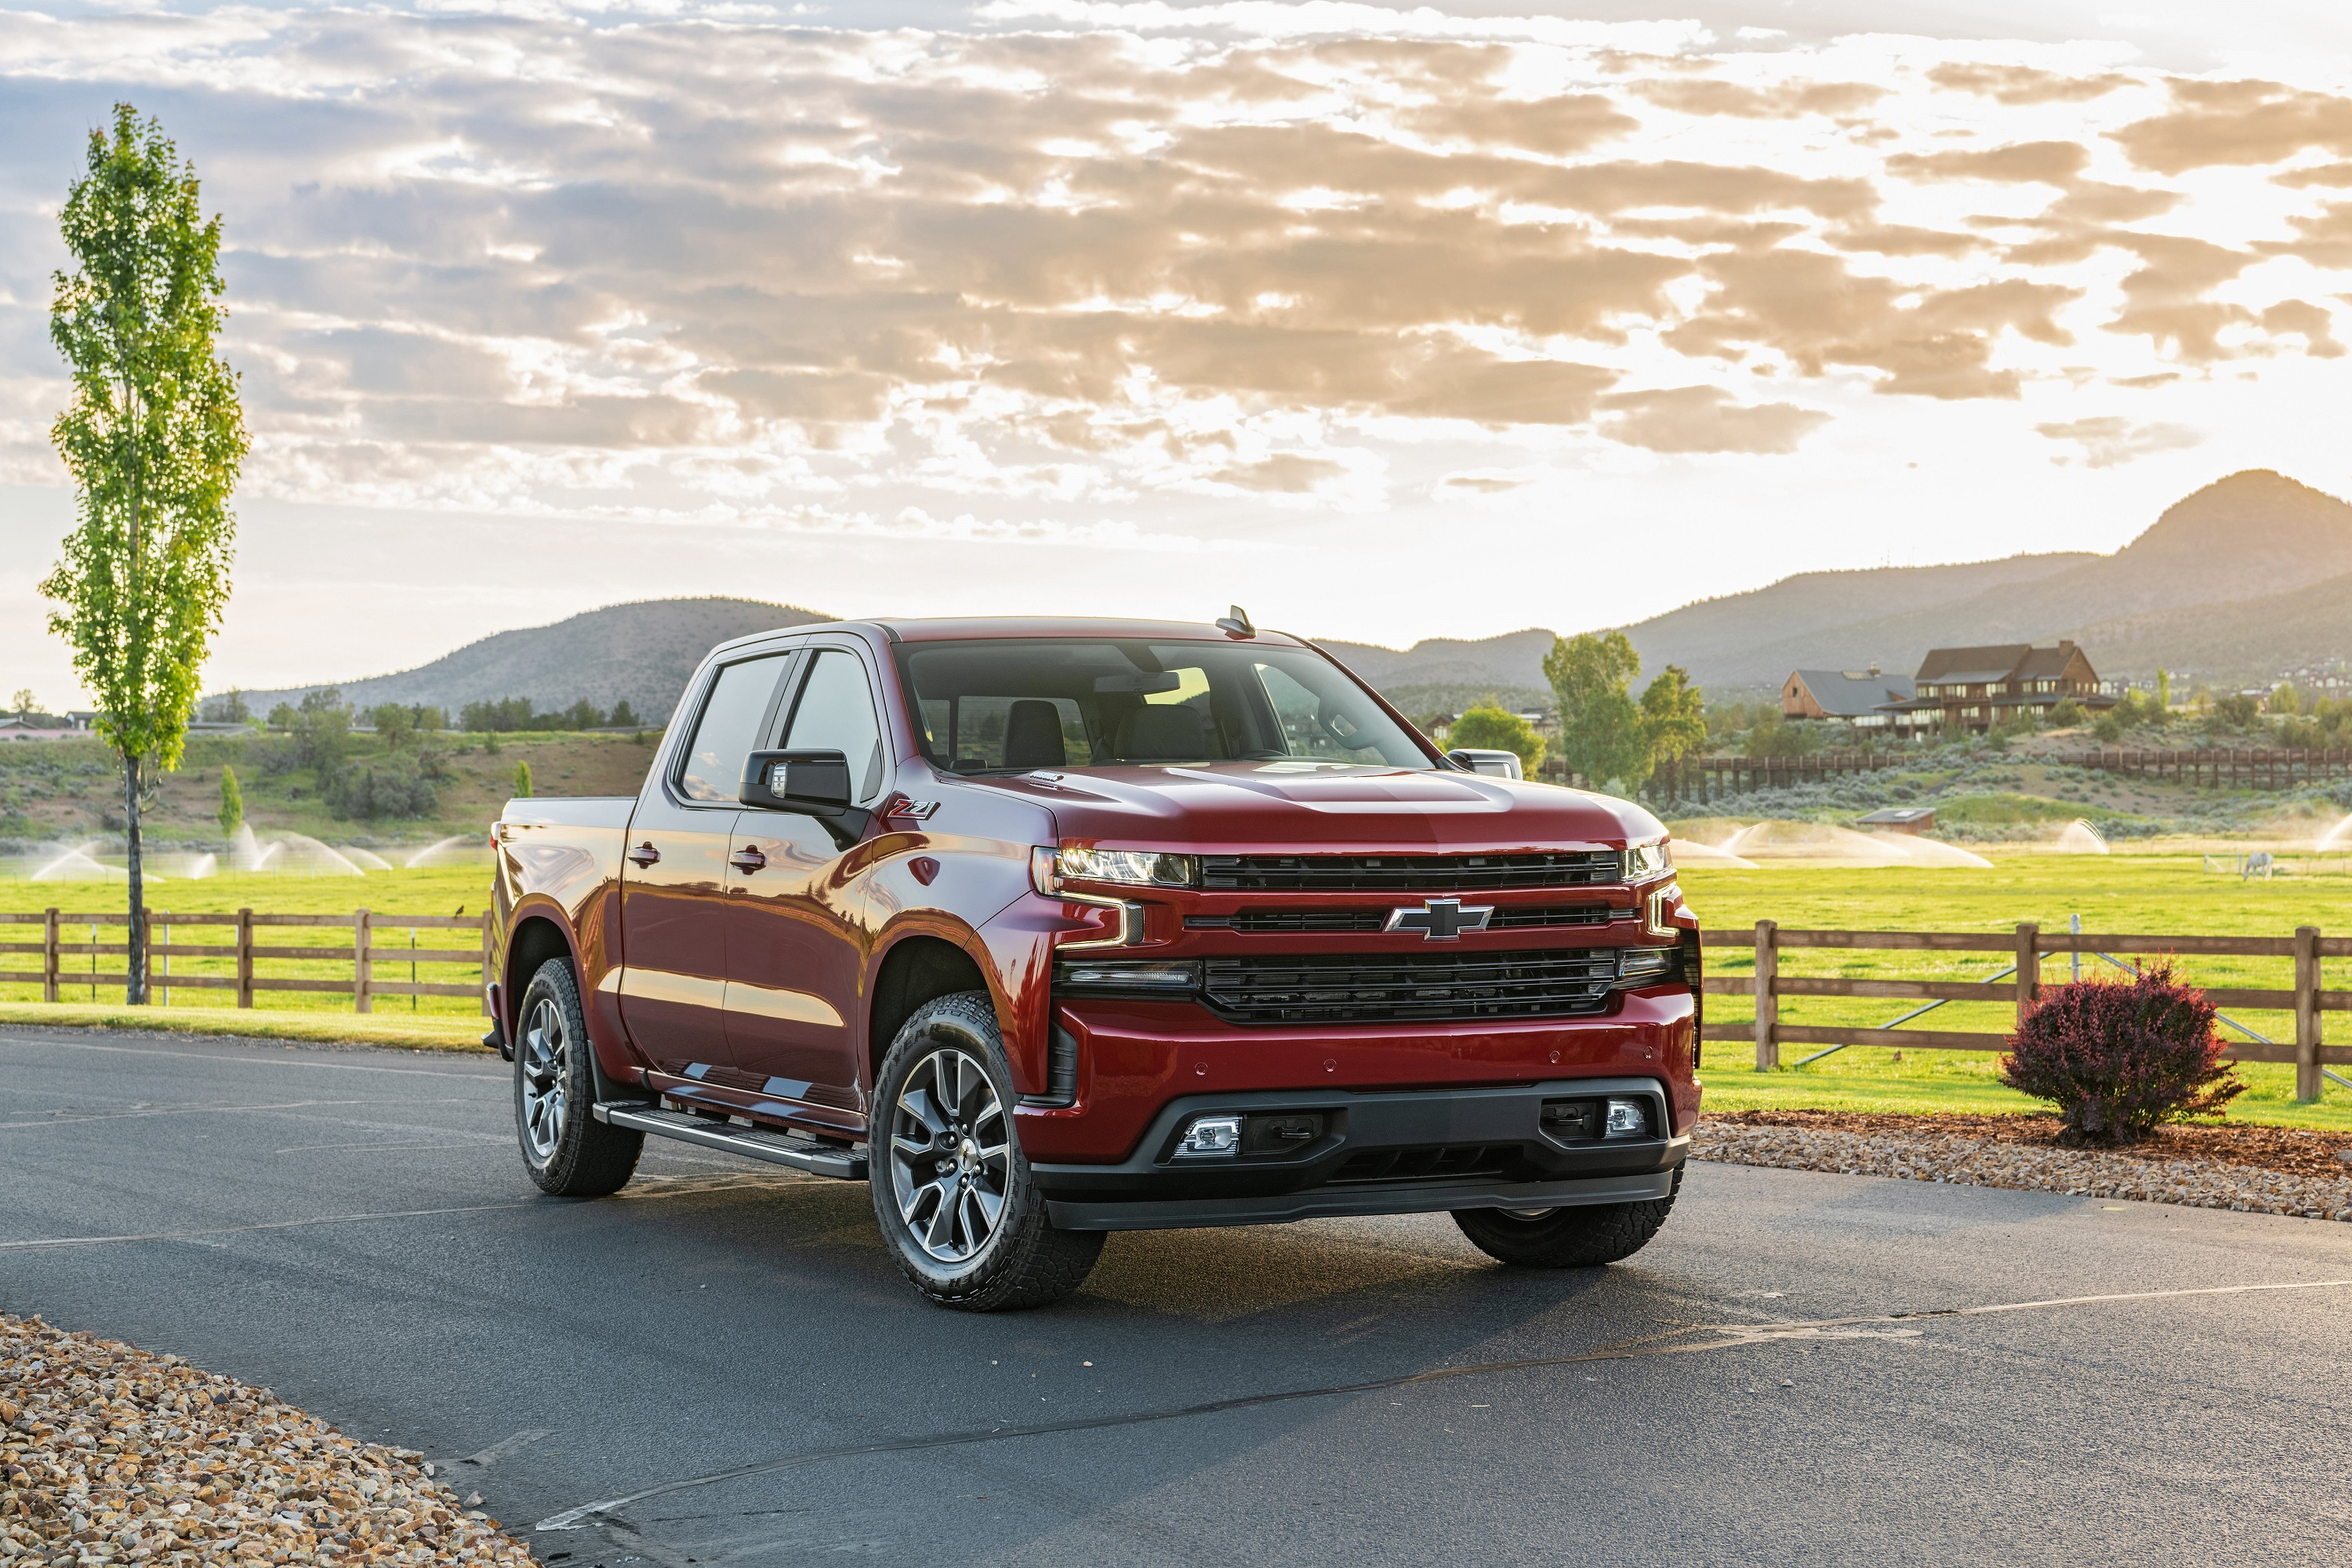 2020 Chevy Silverado A Case Strong For Diesel New On Wheels Groovecar